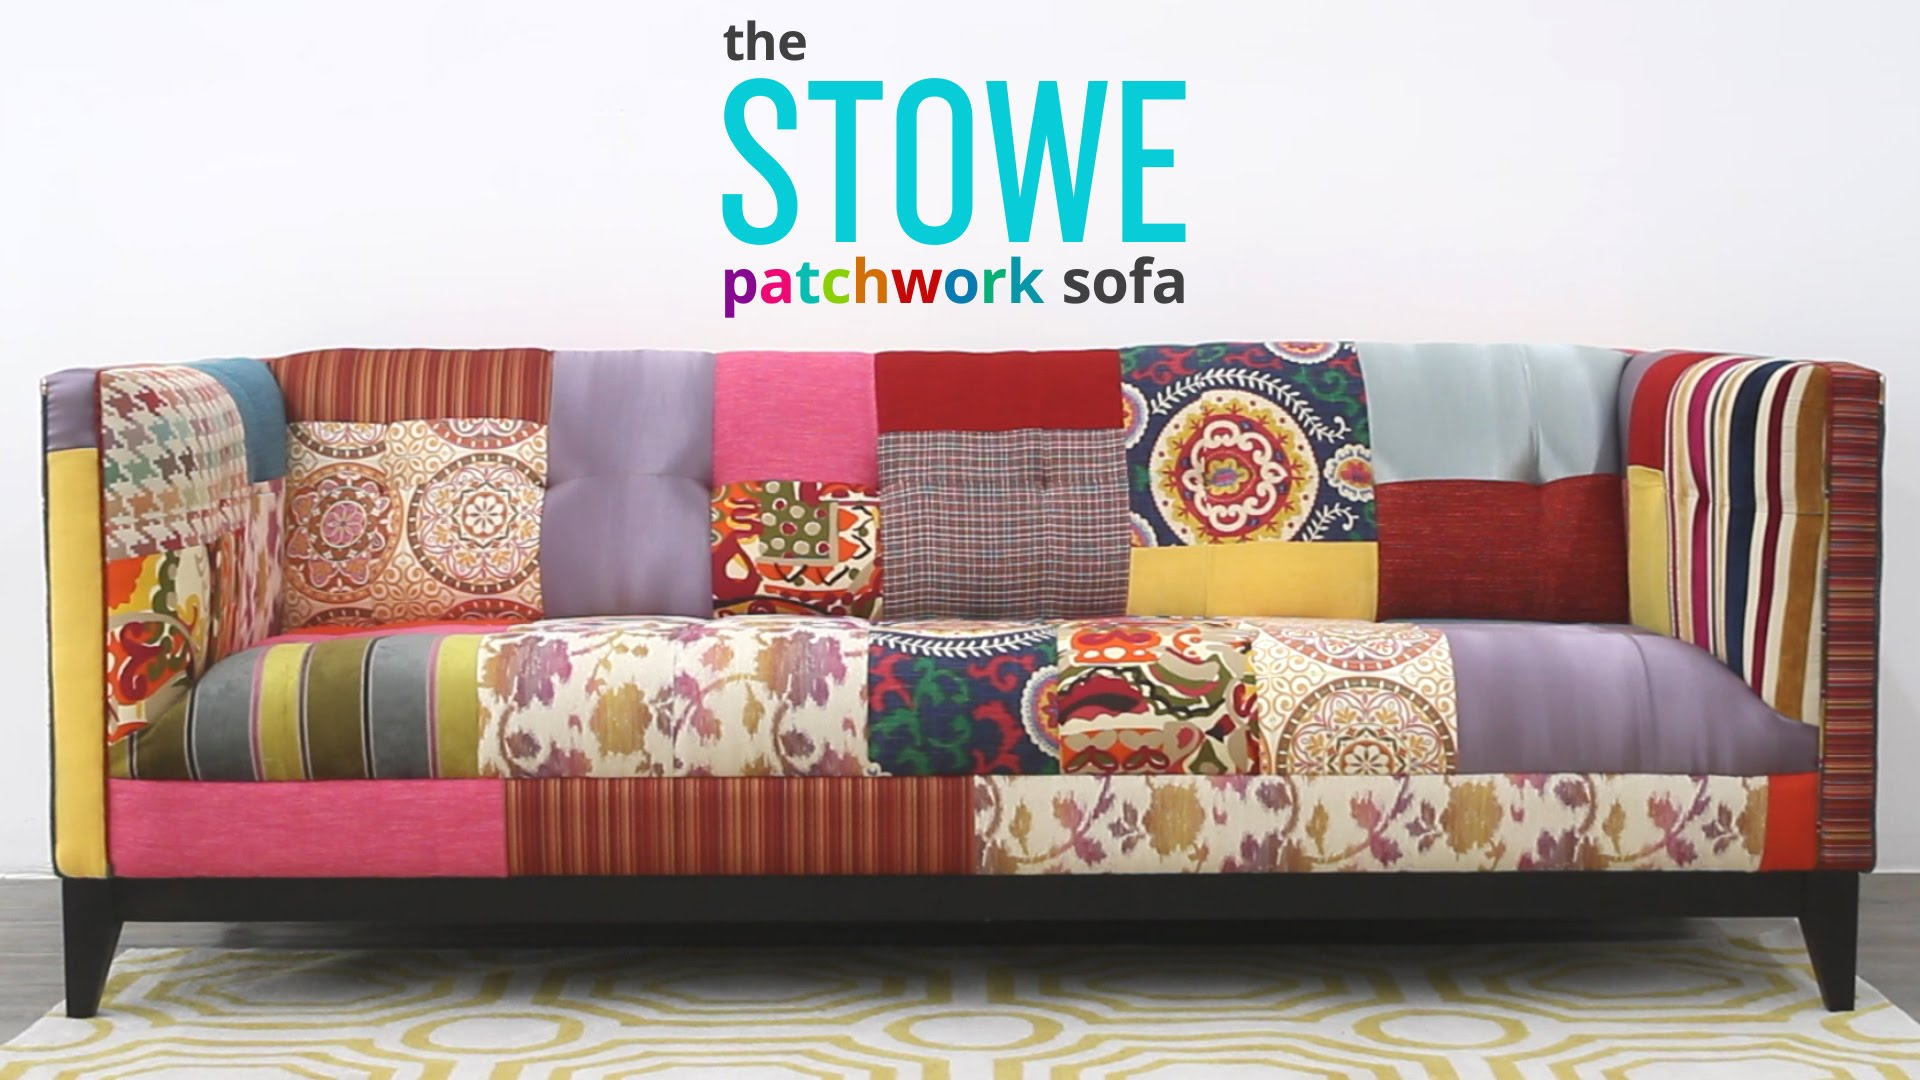 Patchwork Sofa stowe patchwork sofa HJWWNKS